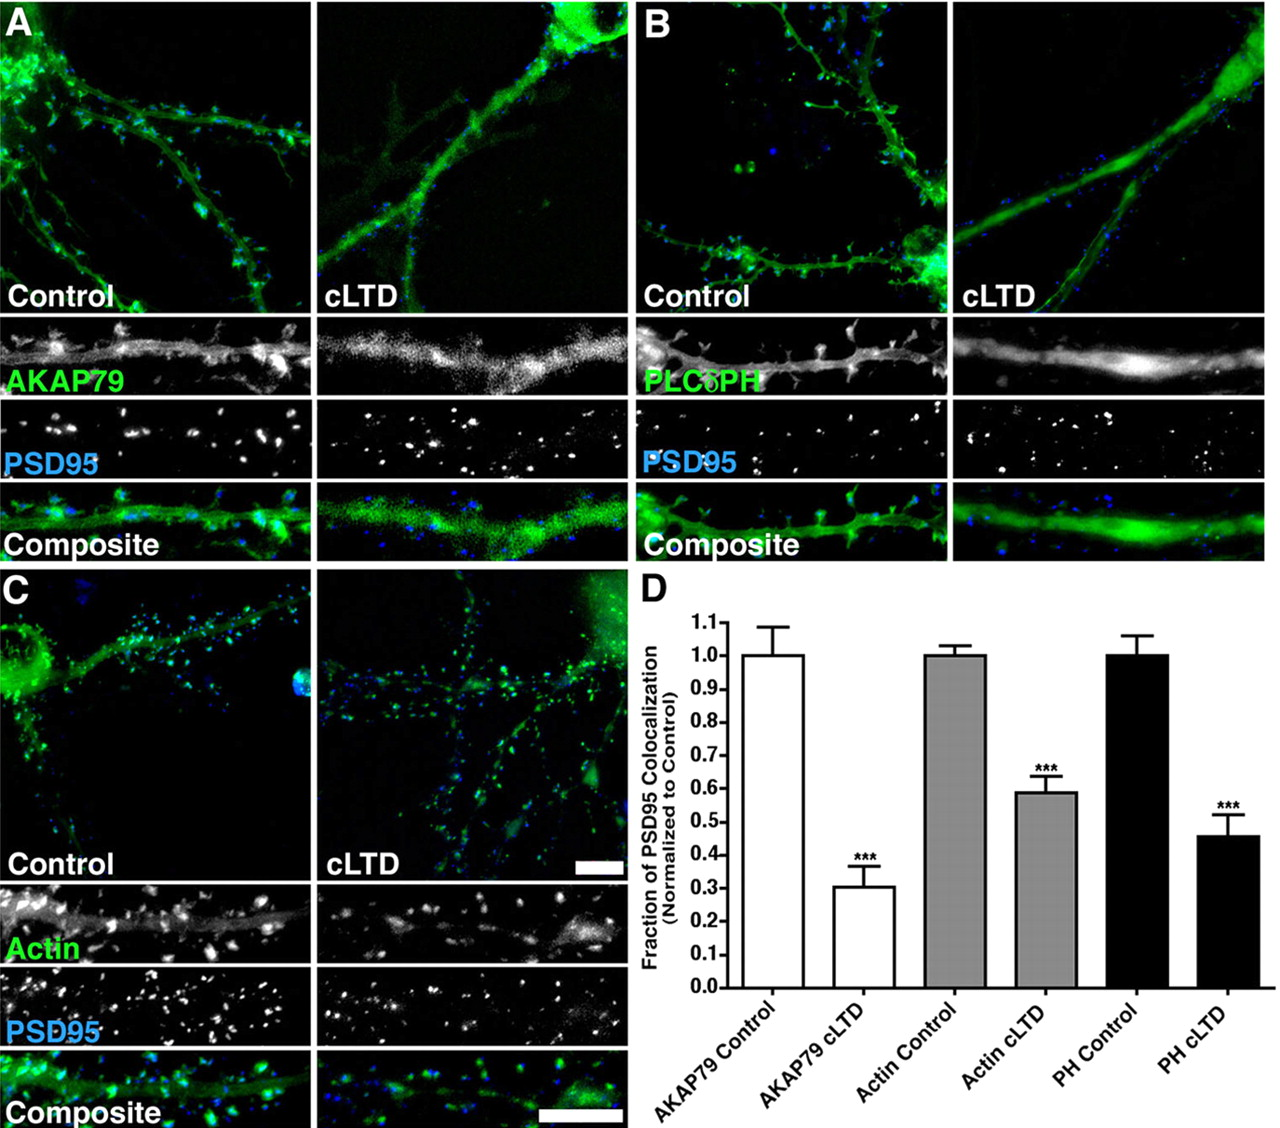 Phospholipase C Is Required for Changes in Postsynaptic Structure